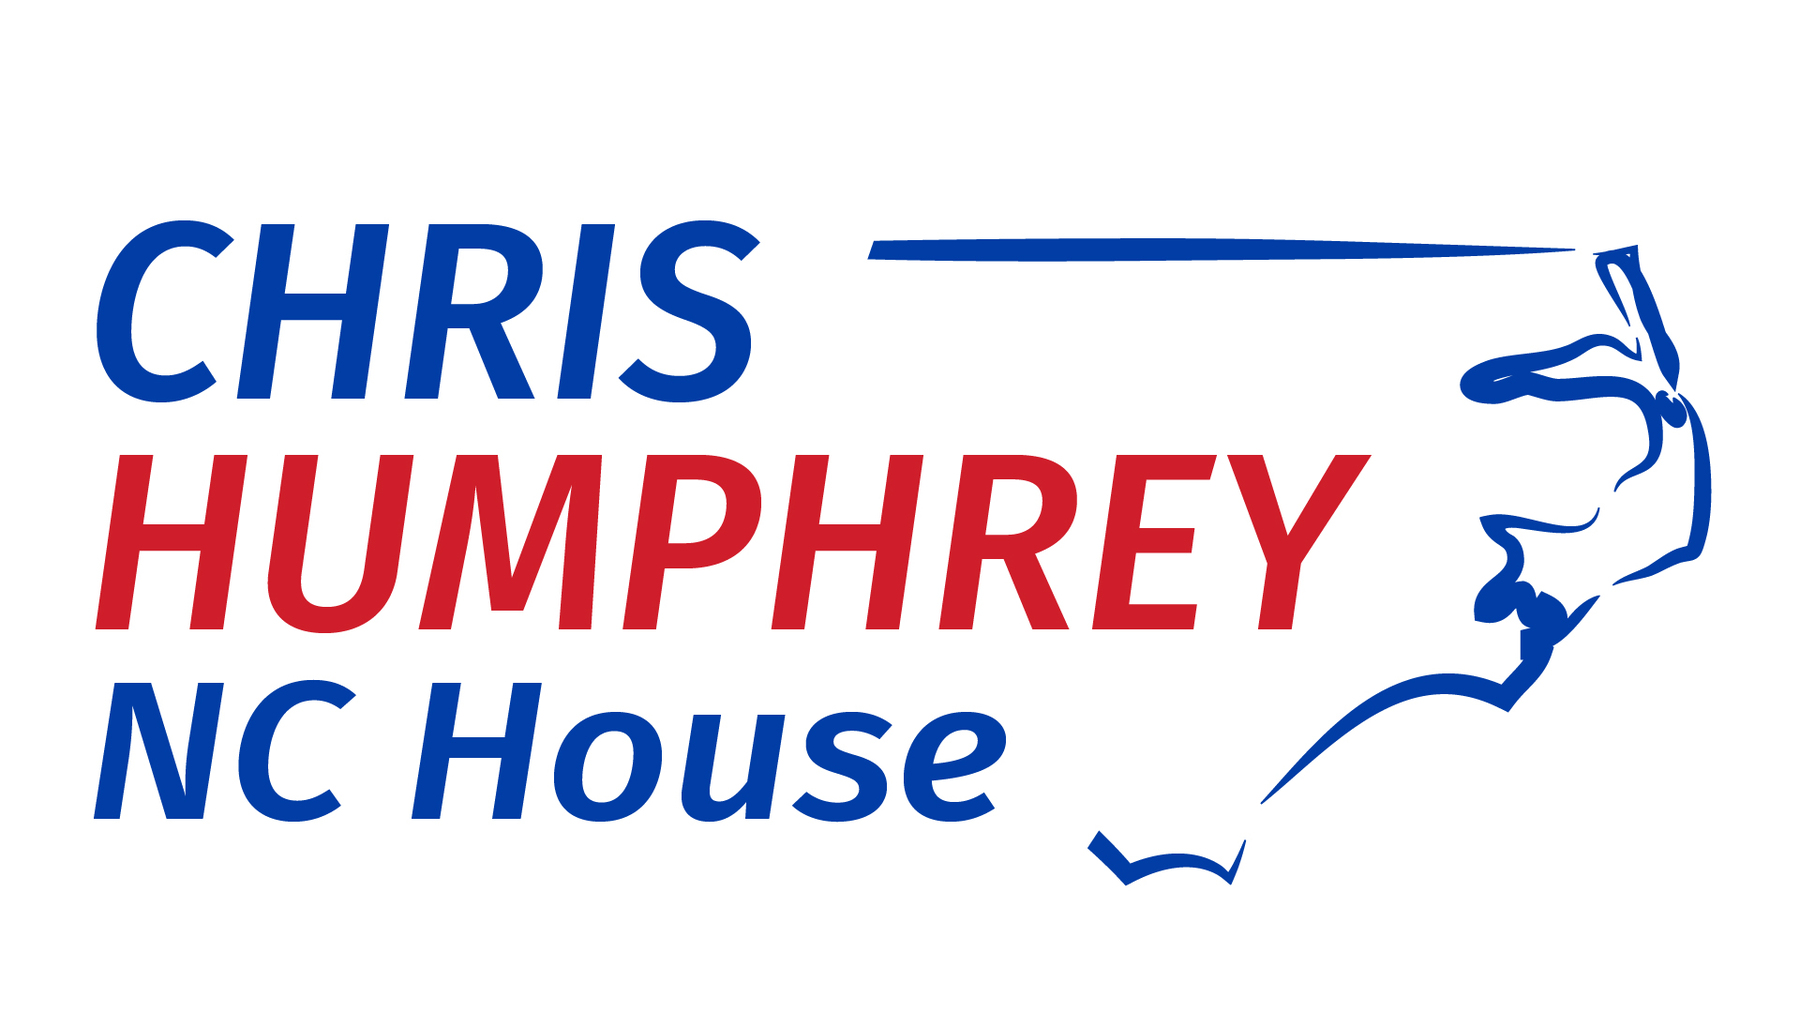 Chris Humphrey Committee: Campaign Account